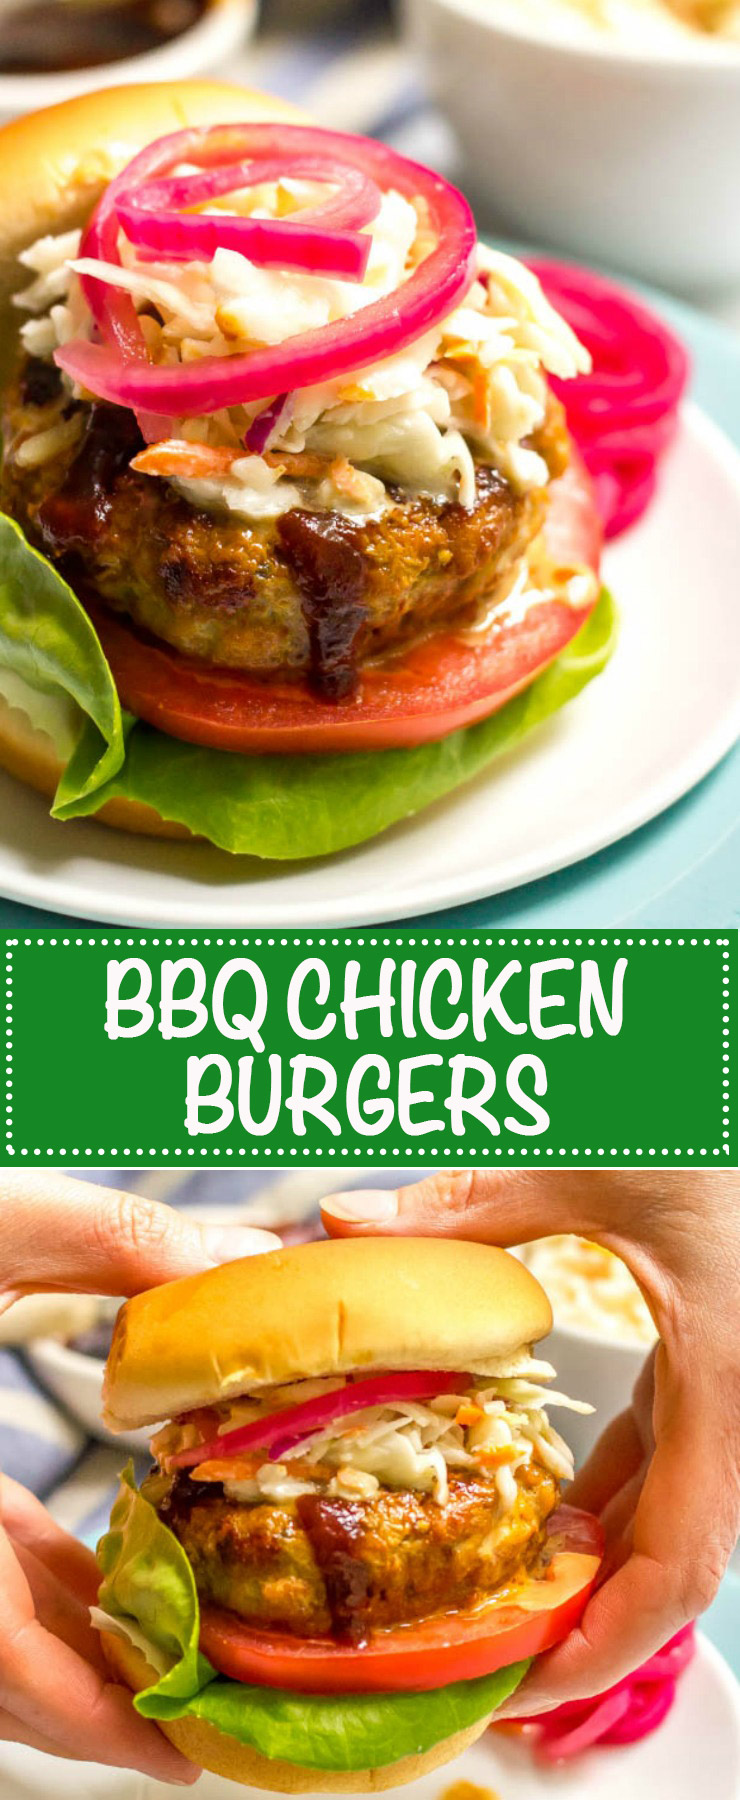 These BBQ chicken burgers require just a few basic ingredients and come out so juicy and flavorful! Add coleslaw and potato salad for a delicious dinner! | www.familyfoodonthetable.com